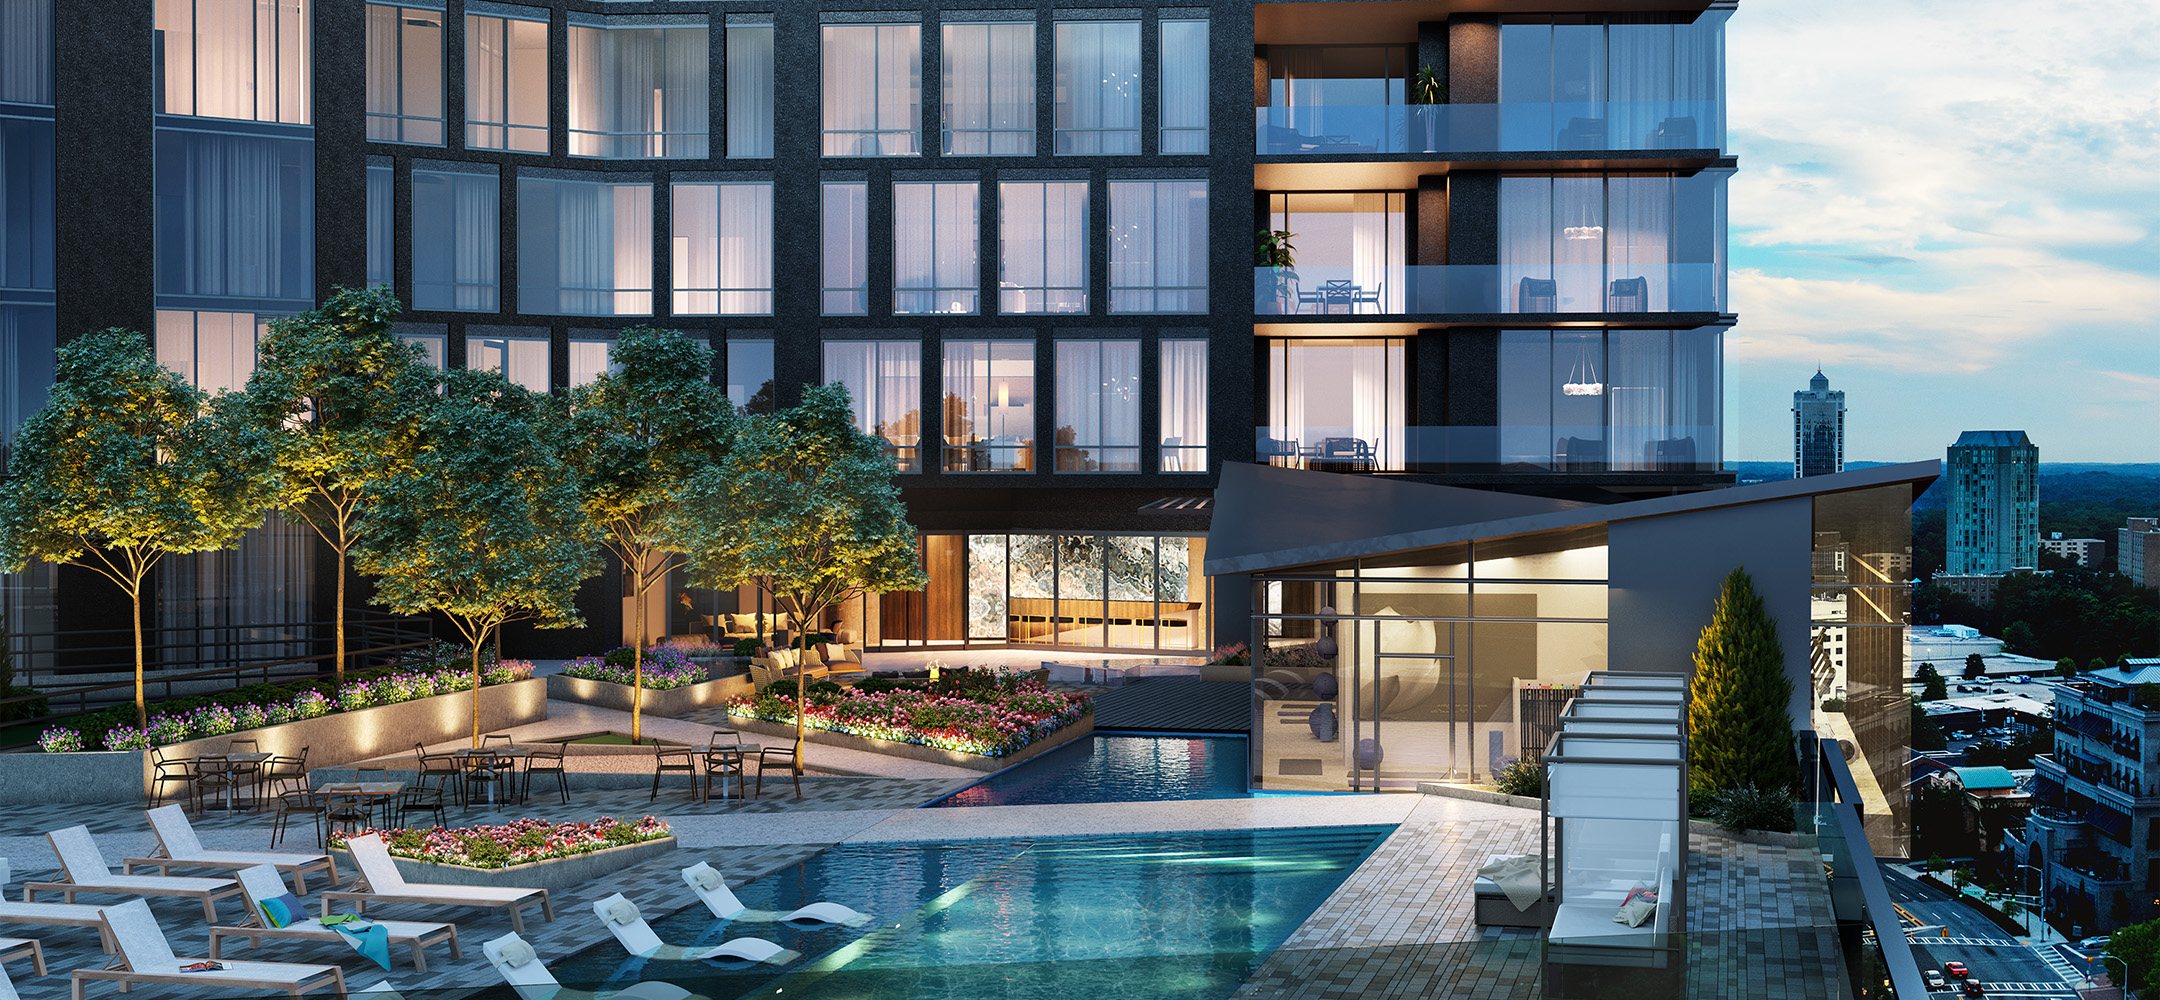 At Buckhead S Ritzy The Charles Expect 4m Condo Prices